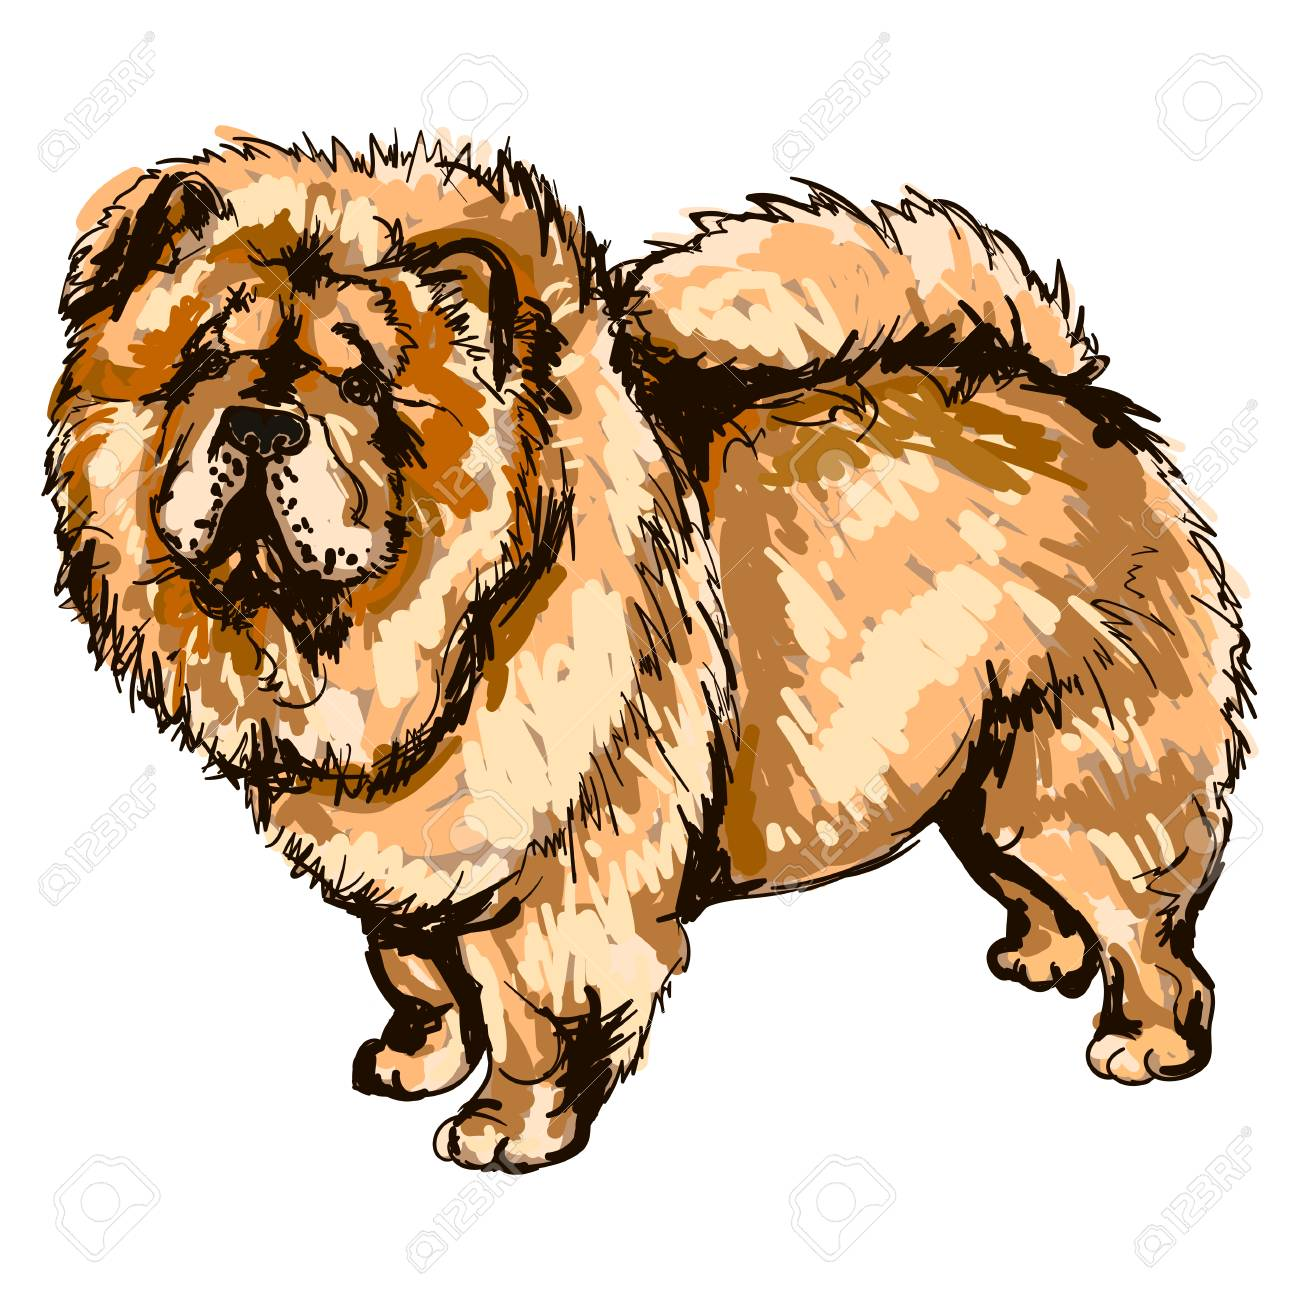 Illustration Of Dog Breed Chow Chow Royalty Free Cliparts Vectors And Stock Illustration Image 87266739